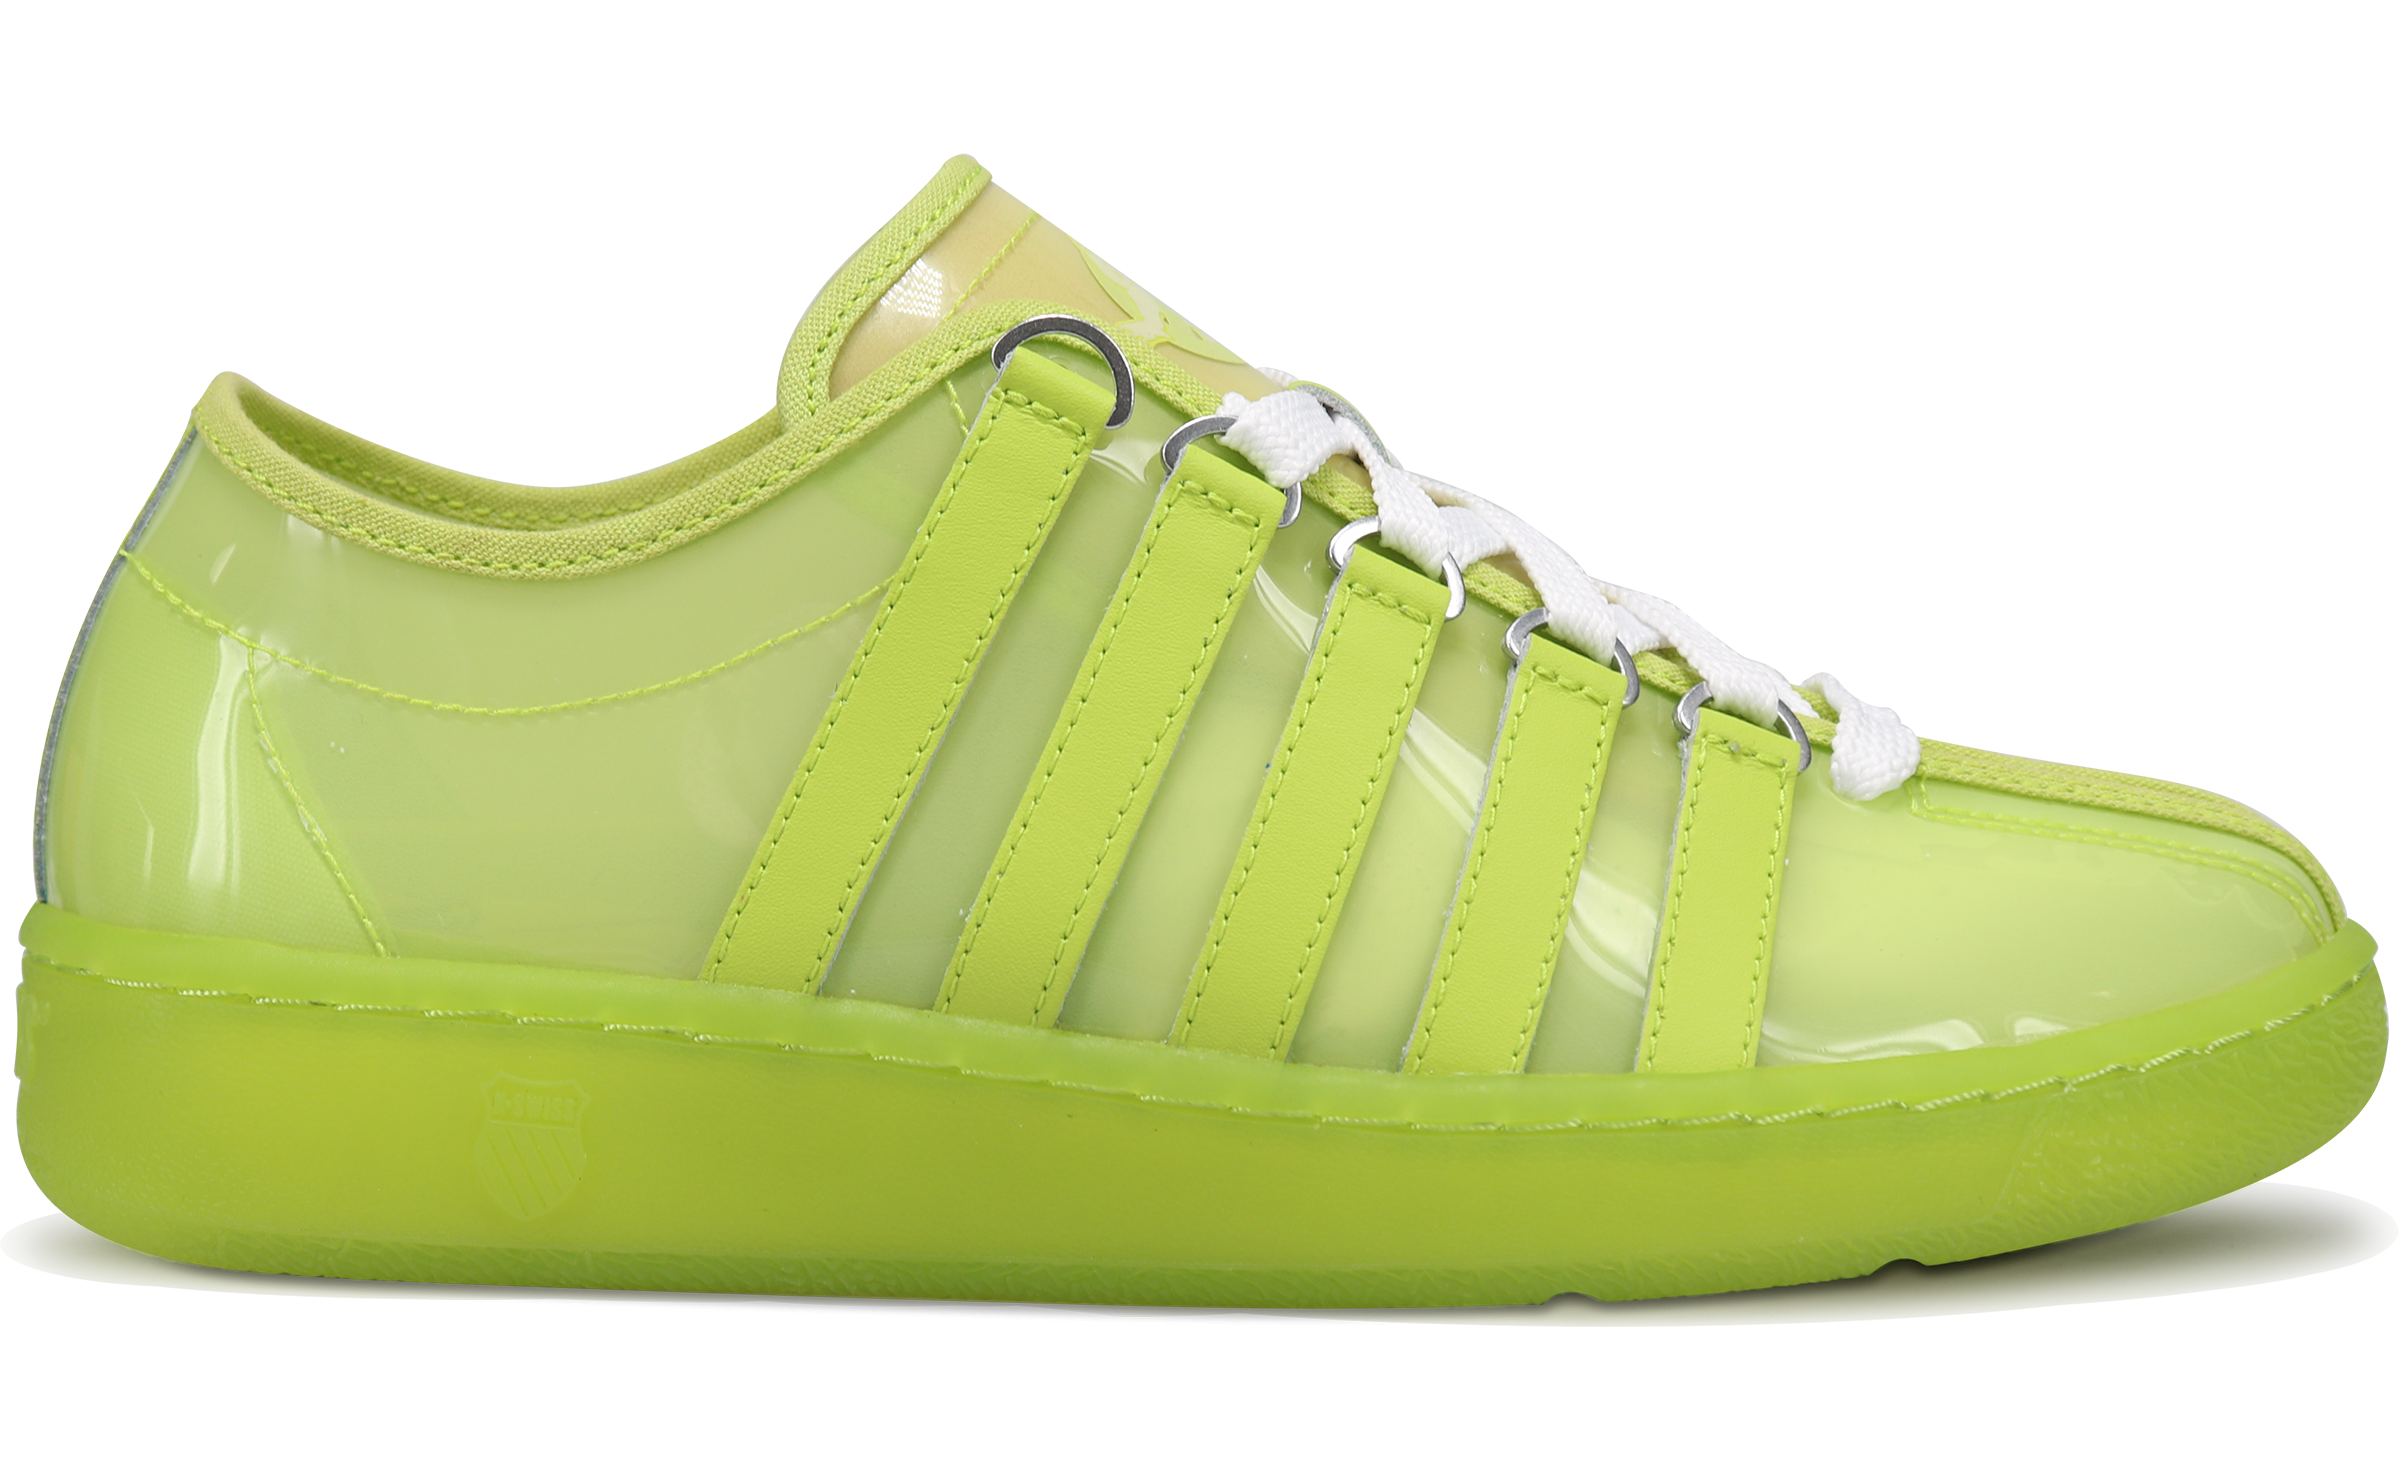 K-Swiss x Ghostbusters Shoes 35th